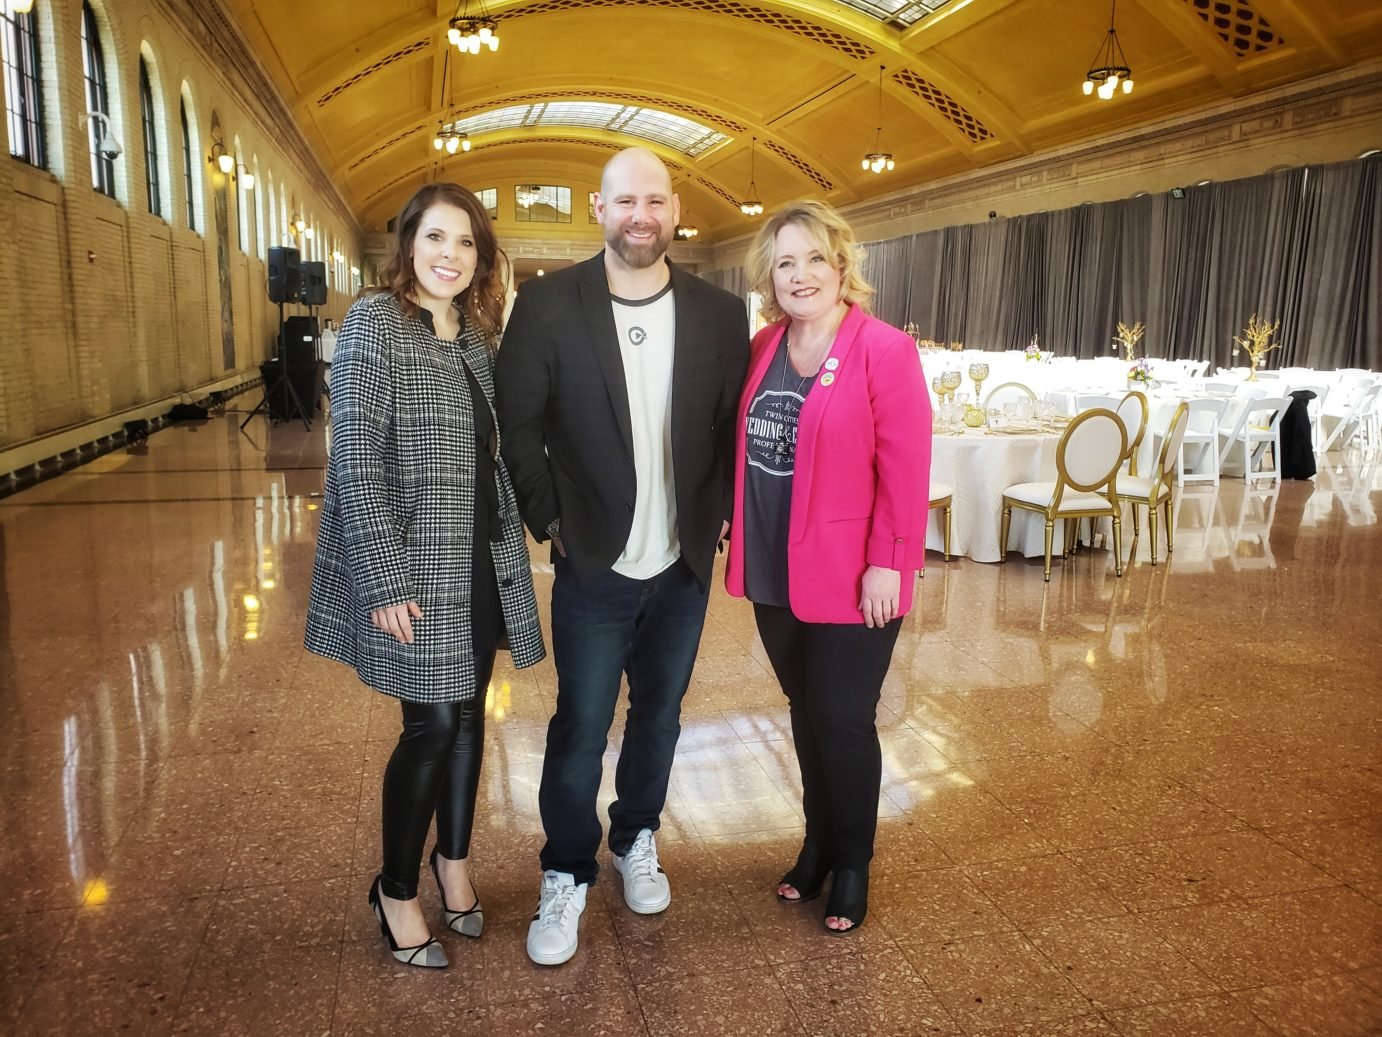 Elizabeth Sherry, Matthew Sherry, Michelle Tverberg, Union Depot St. Paul